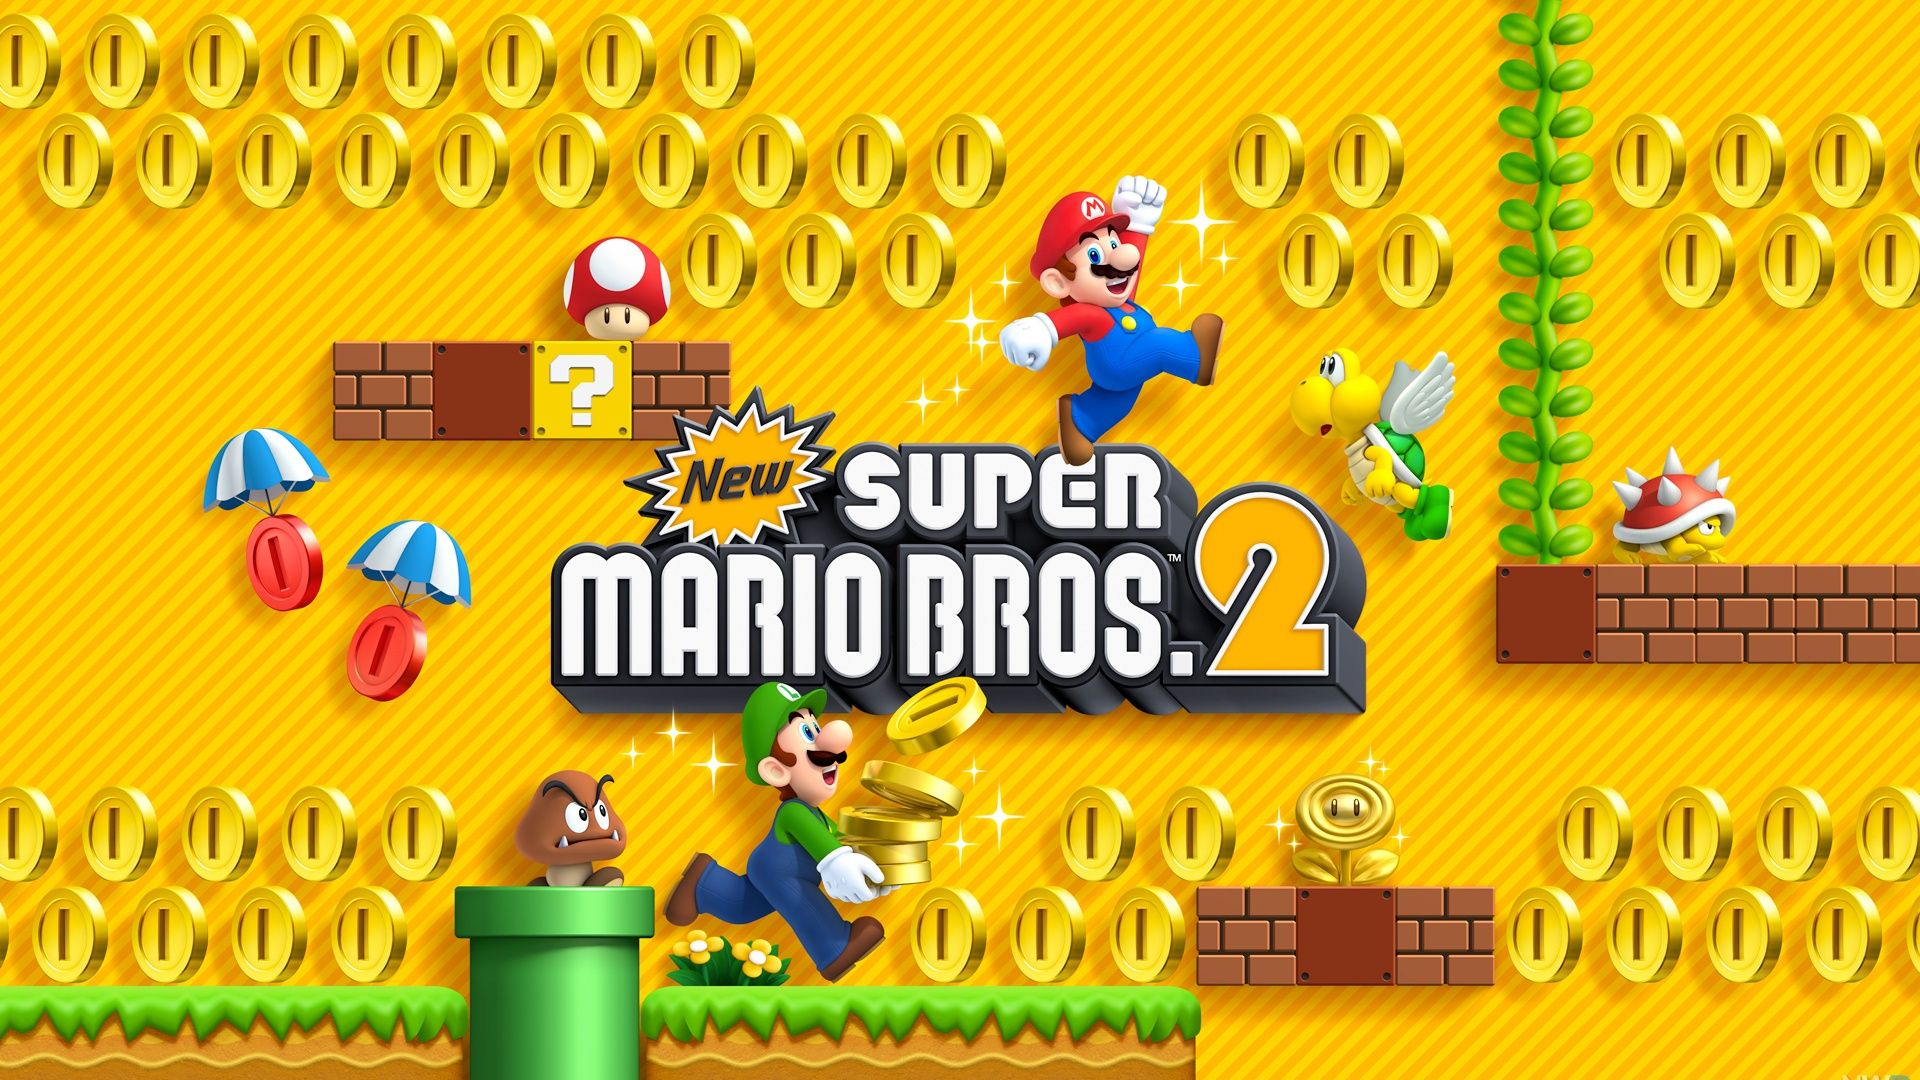 1920x1080 2 New Super Mario Bros. 2 HD Wallpapers | Background Images ...